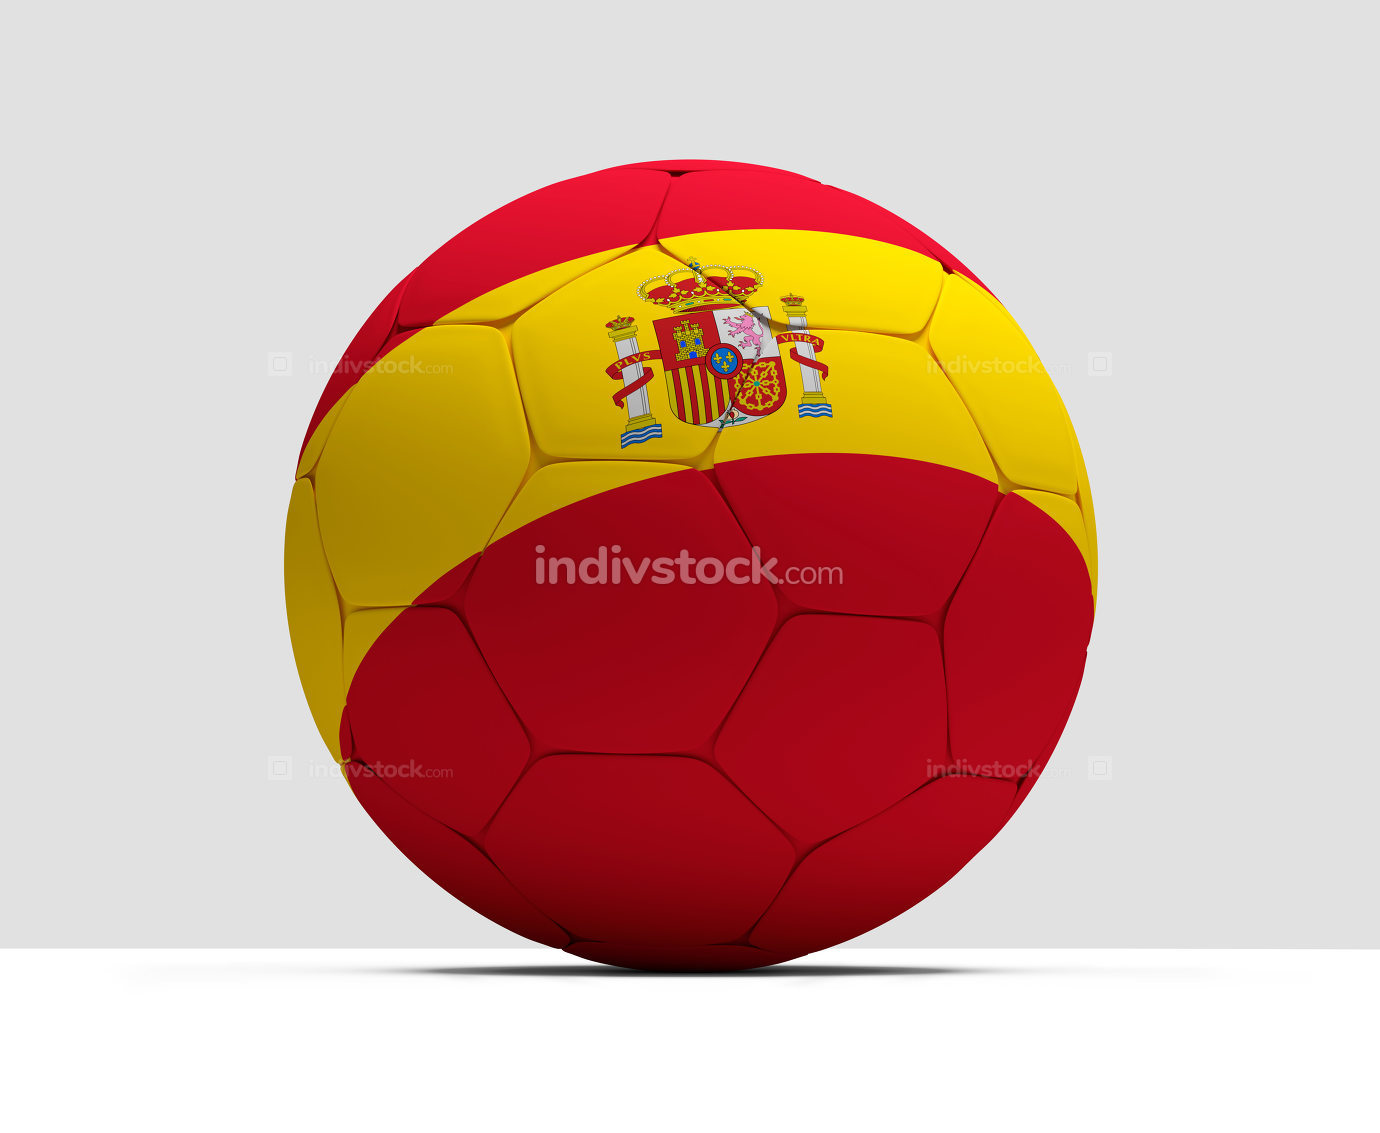 Spain spanish soccer football ball 3D Rendering